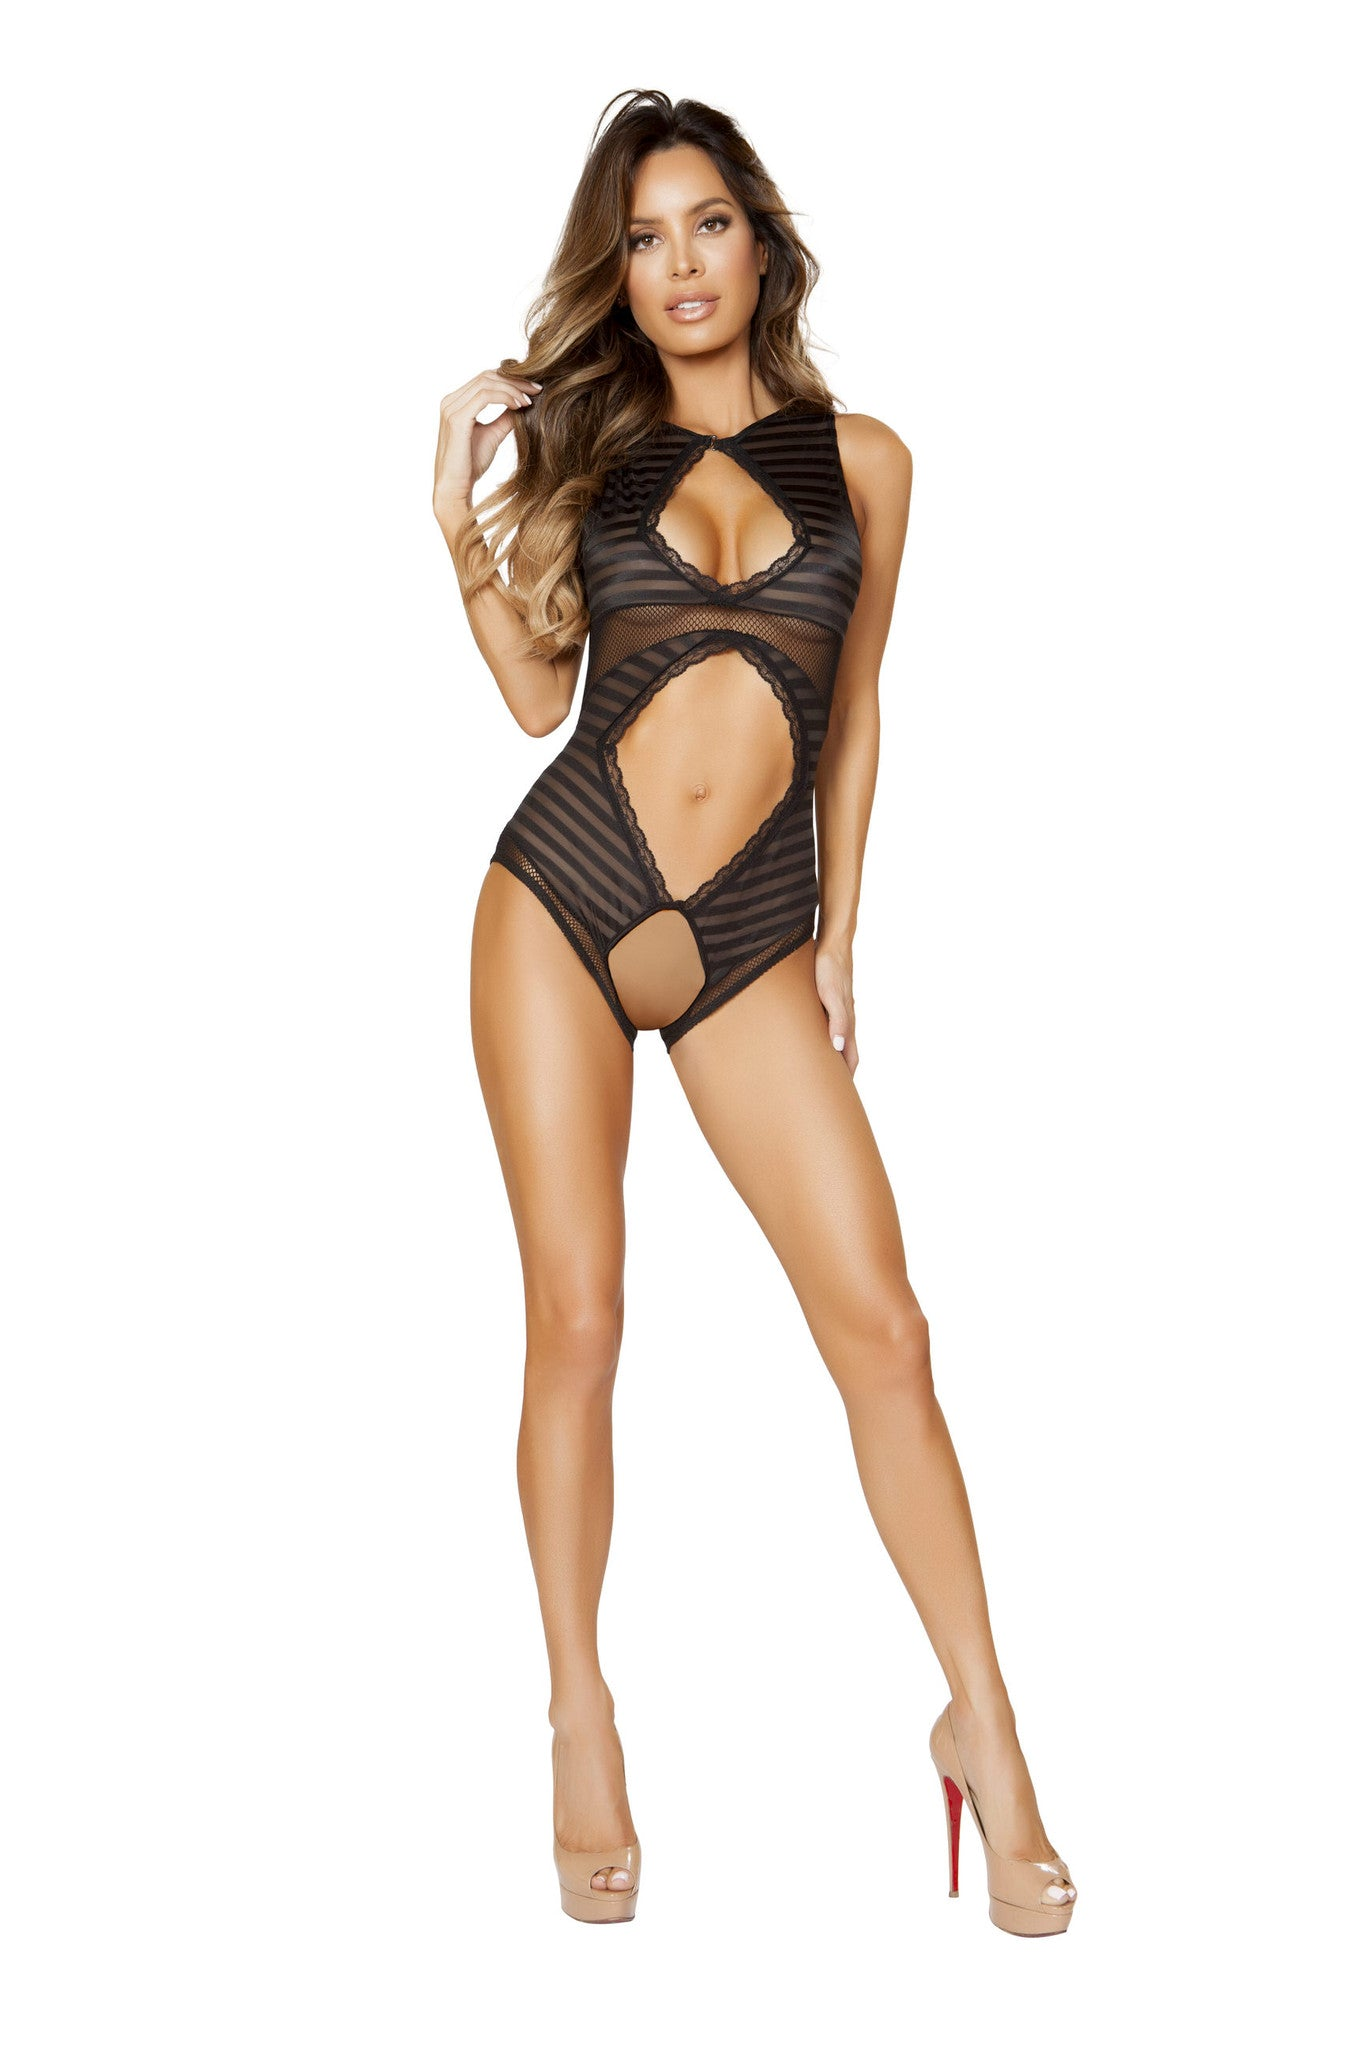 LI154 ${description} | Roma Costume and Roma Confidential wholesale manufacturer of Women Apparel bulk world wide wholesale and world wide drop ship services for Adult Halloween Costumes, Sexy and Elegant Lingerie, Rave Clothing, Club wear, and Christmas Costumes. lingerie, Roma Costume, Inc., Roma Costume, Roma Confidential, Wholesale clothing, drop ship, drop ship service, Wholesale Lingerie, Wholesale Adult Halloween Costumes, Rave Clothing, EDM Clothing, Festival Wear, Christmas Costumes, Clubwear, Club wear.